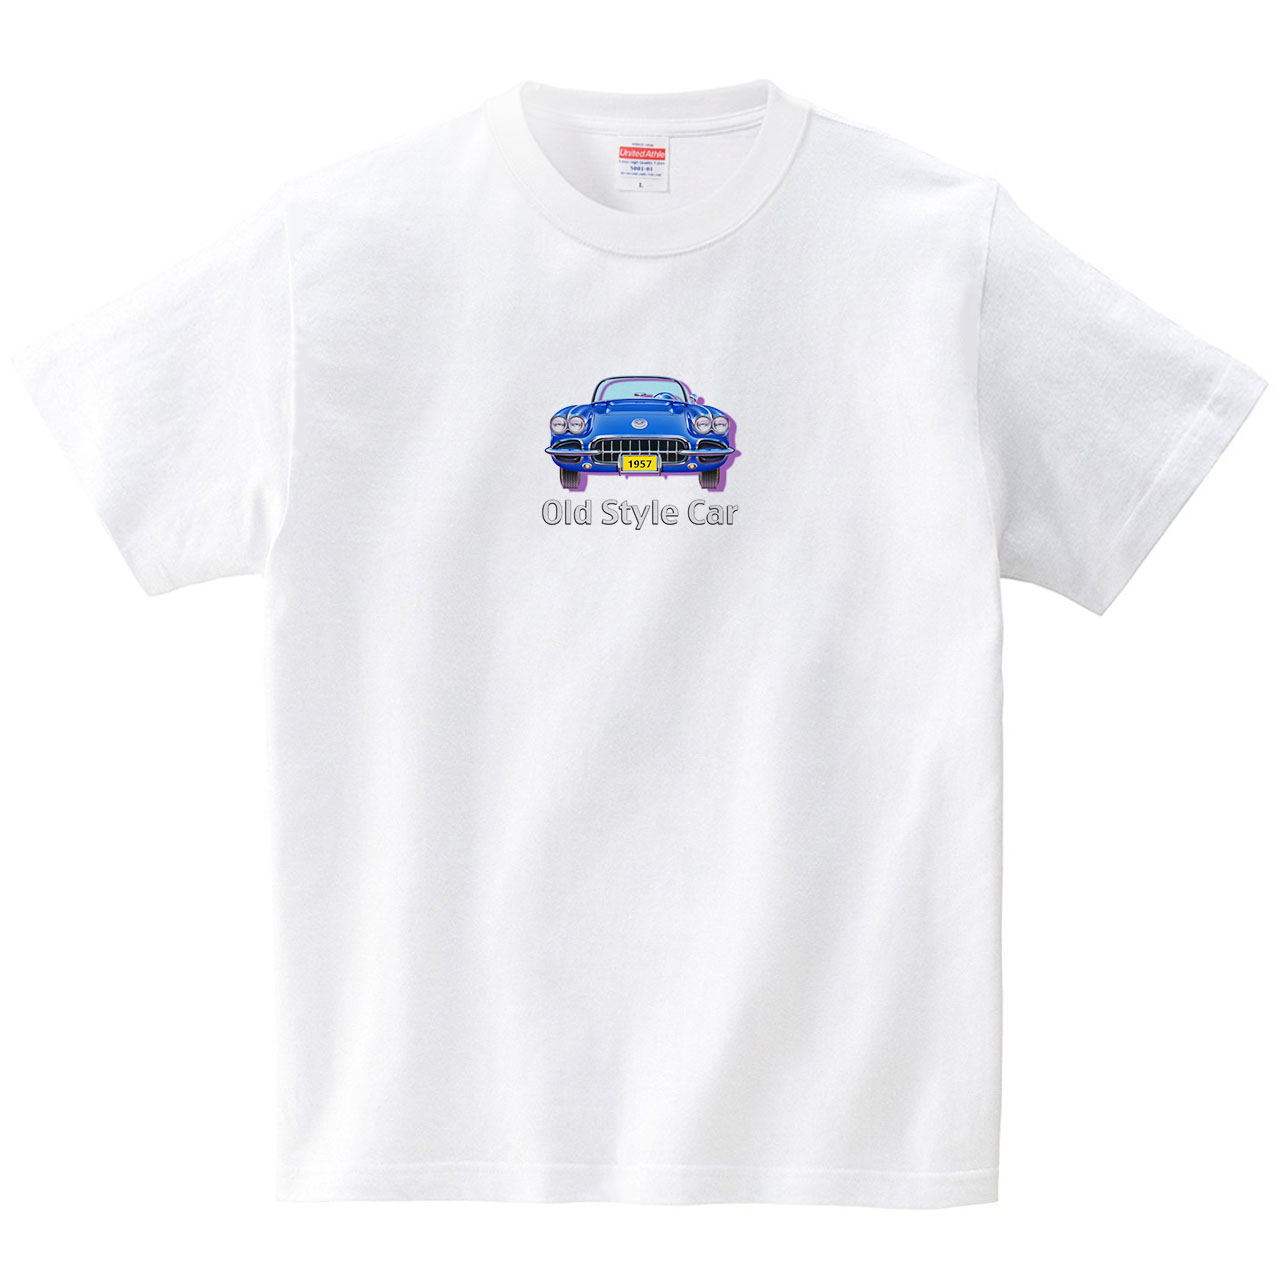 Old Style Car(Tシャツ・ホワイト)(永清文明)